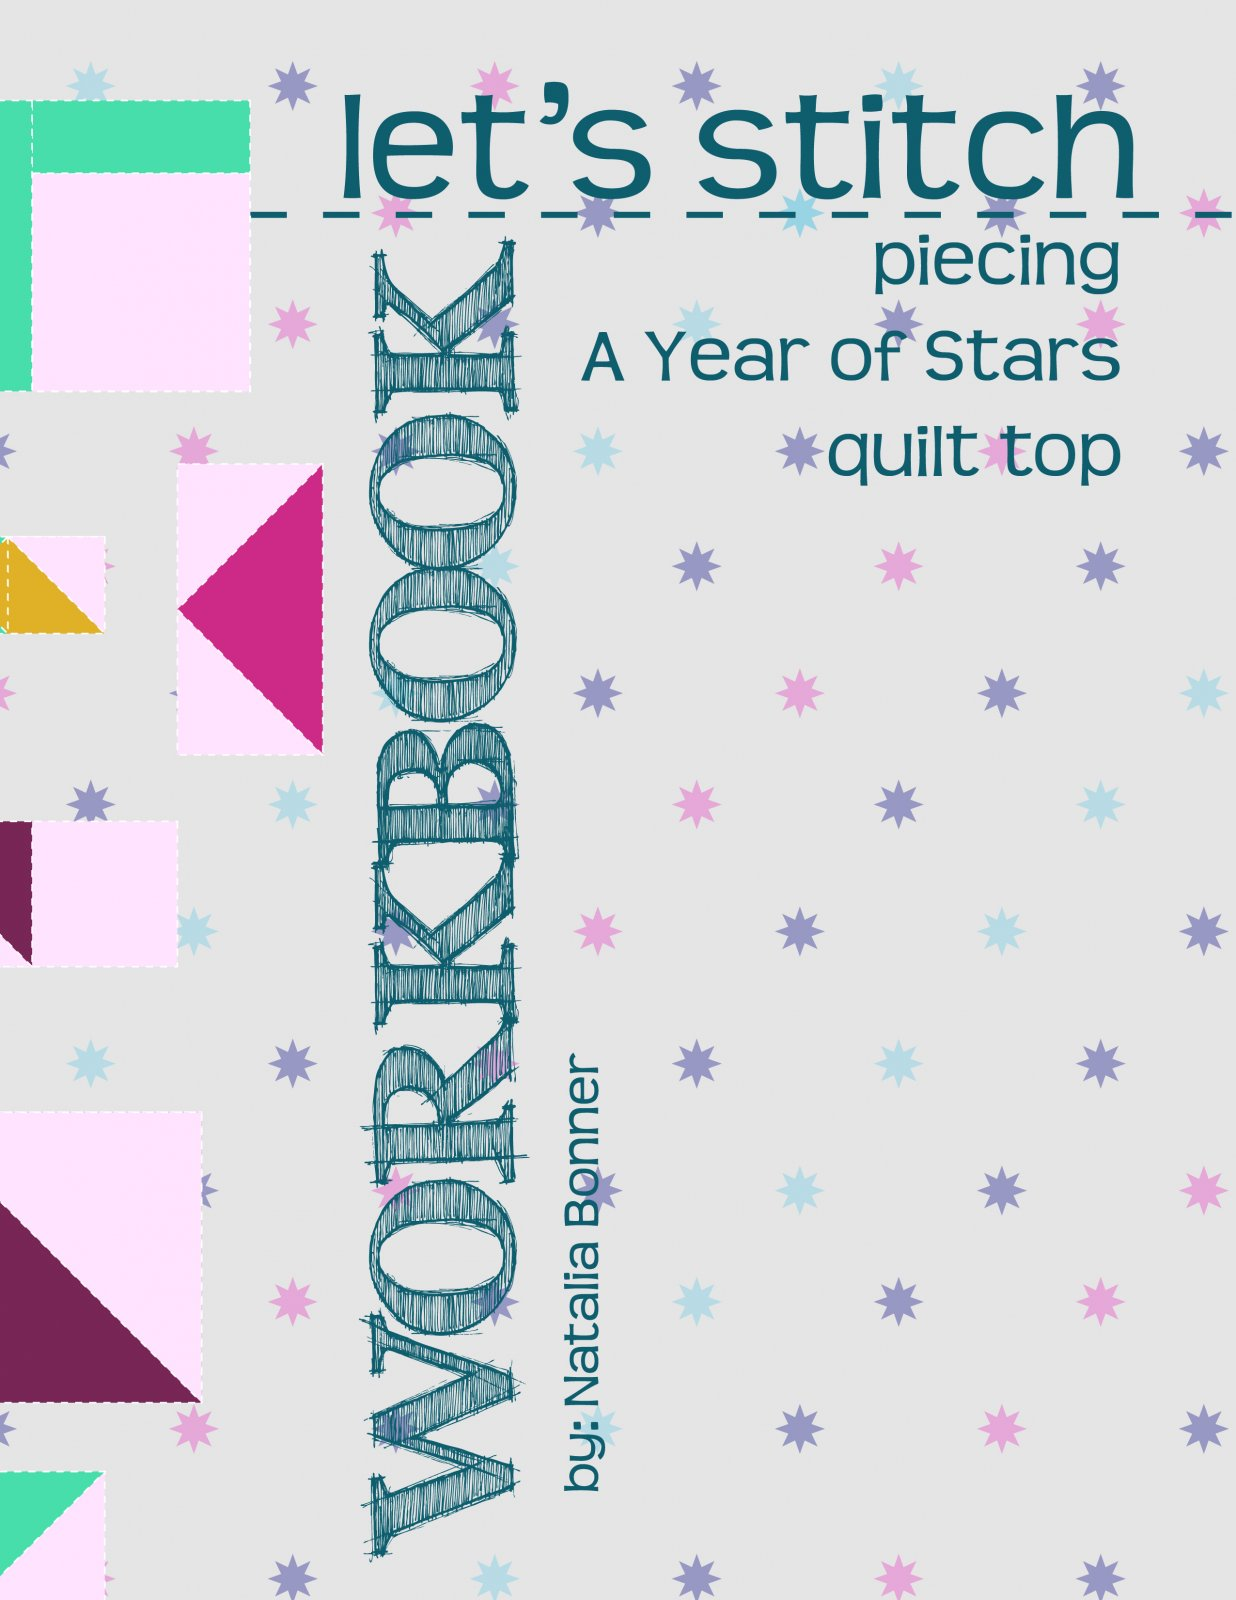 Let's Stitch - A Year of Stars - Quilt Top Workbook: A Piecing Workbook